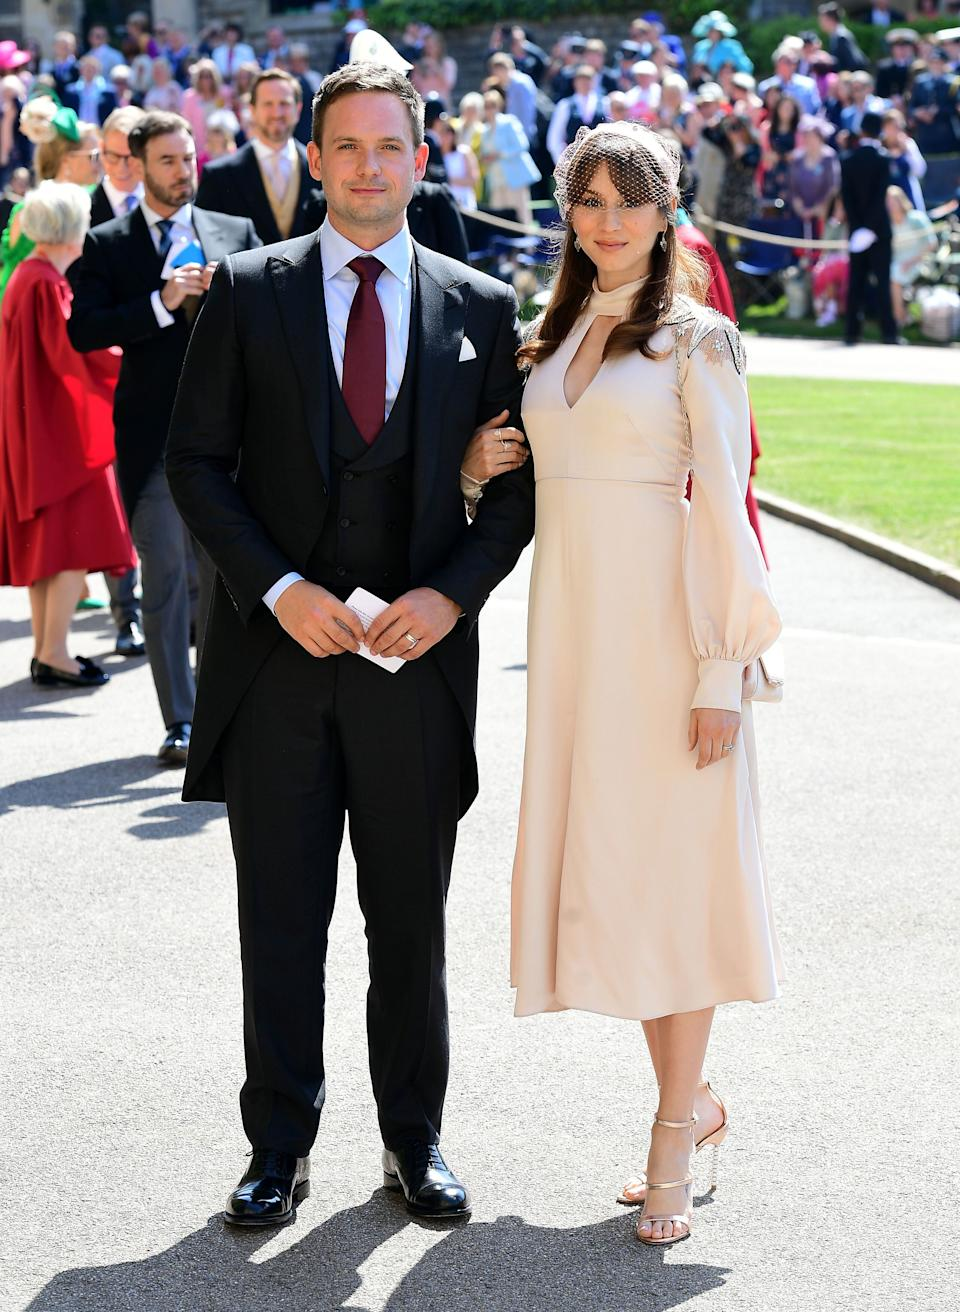 Patrick J. Adams and Troian Bellisario arrive at St George's Chapel at Windsor Castle before the wedding of Prince Harry to Meghan Markle. (Photo: Photo by Ian West - WPA Pool/Getty Images)